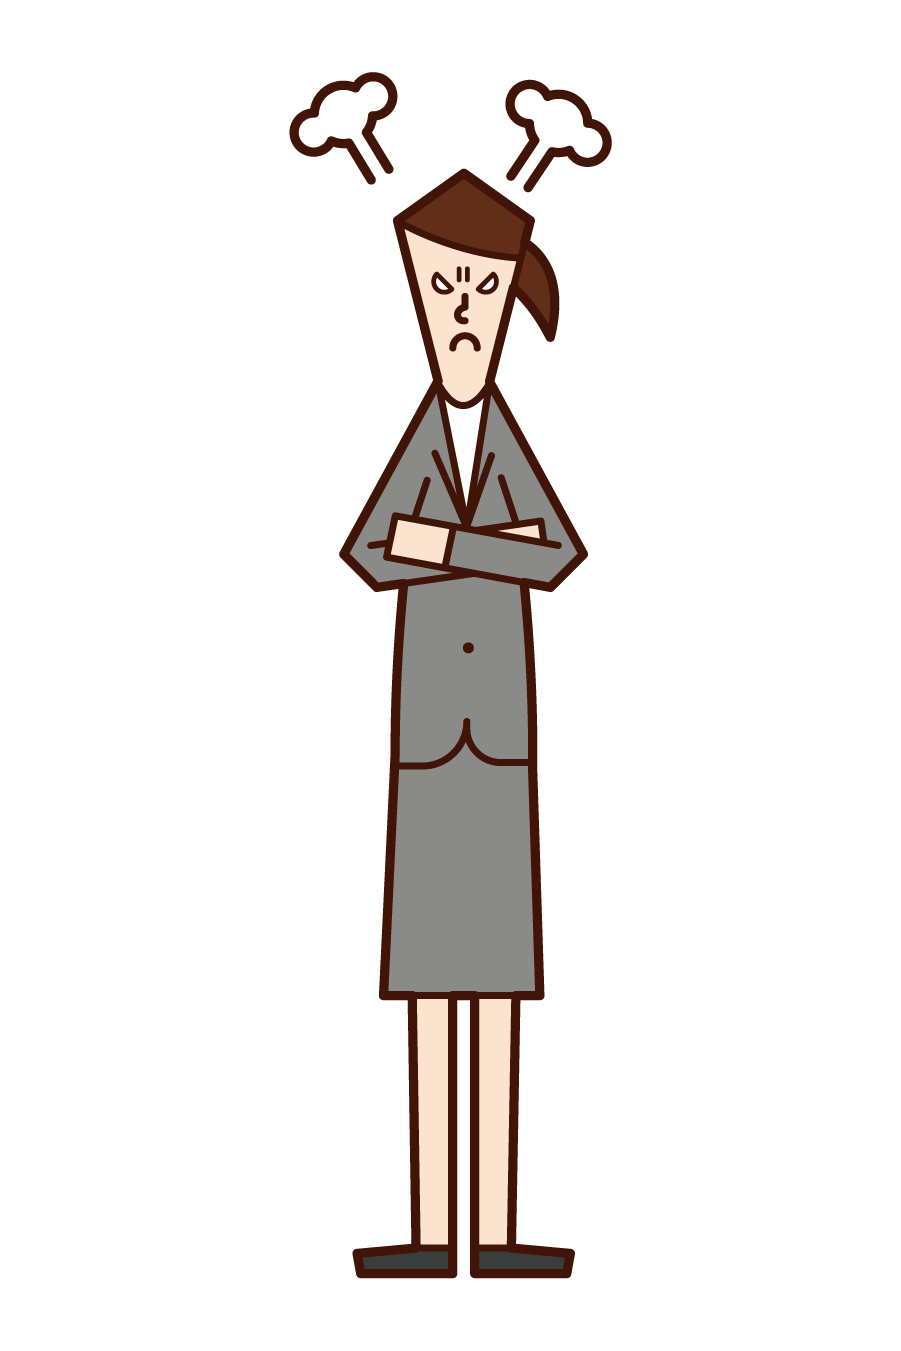 Illustration of an angry person (female)